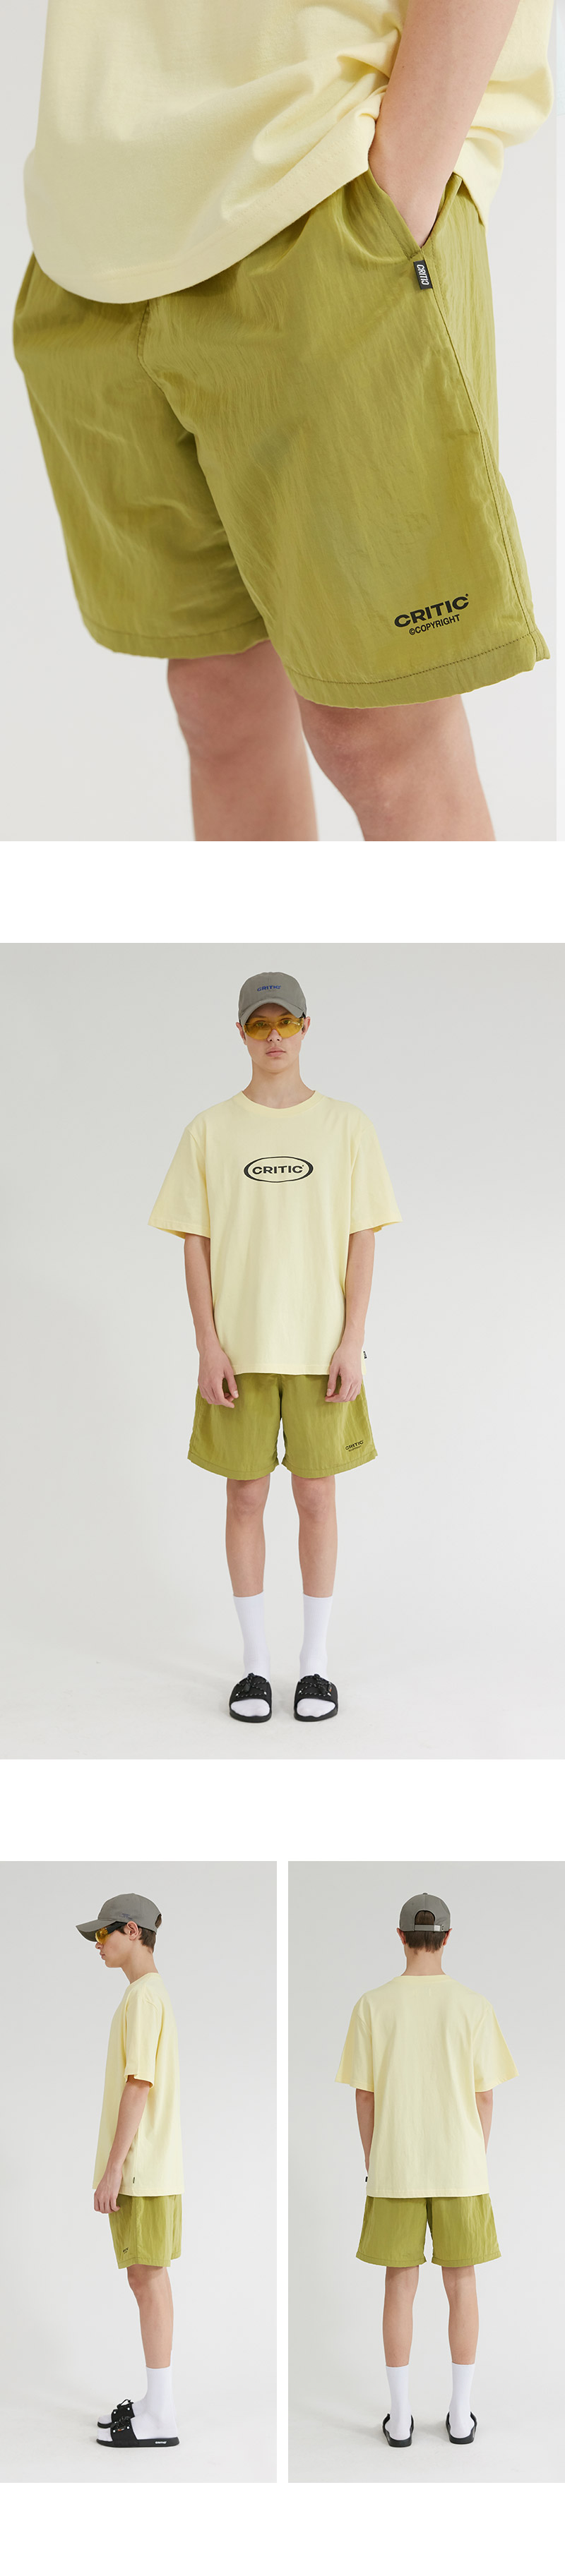 크리틱 BOARD SHORTS(OLIVE GREEN)_CTONUSP02UG4